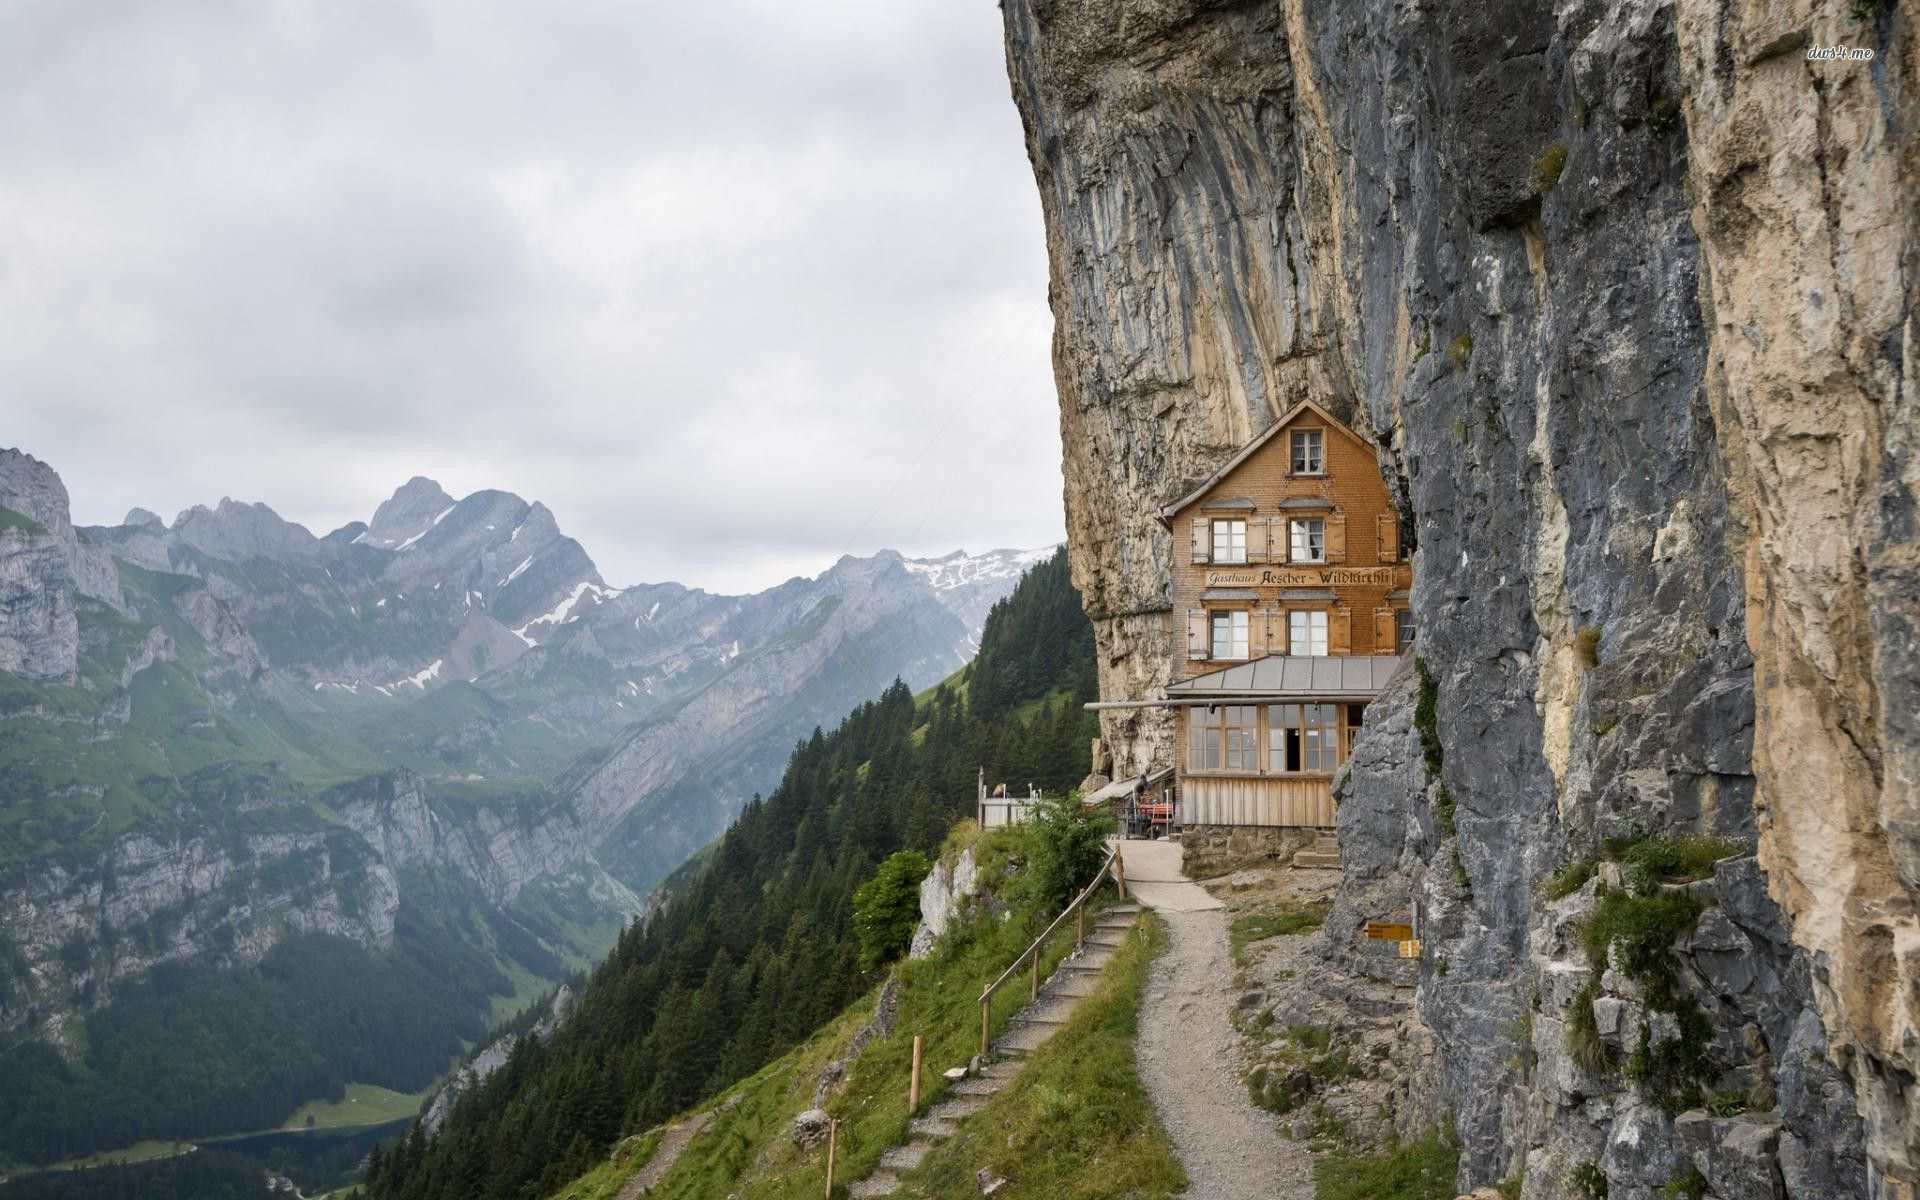 9. Aescher Hotel, Switzerland